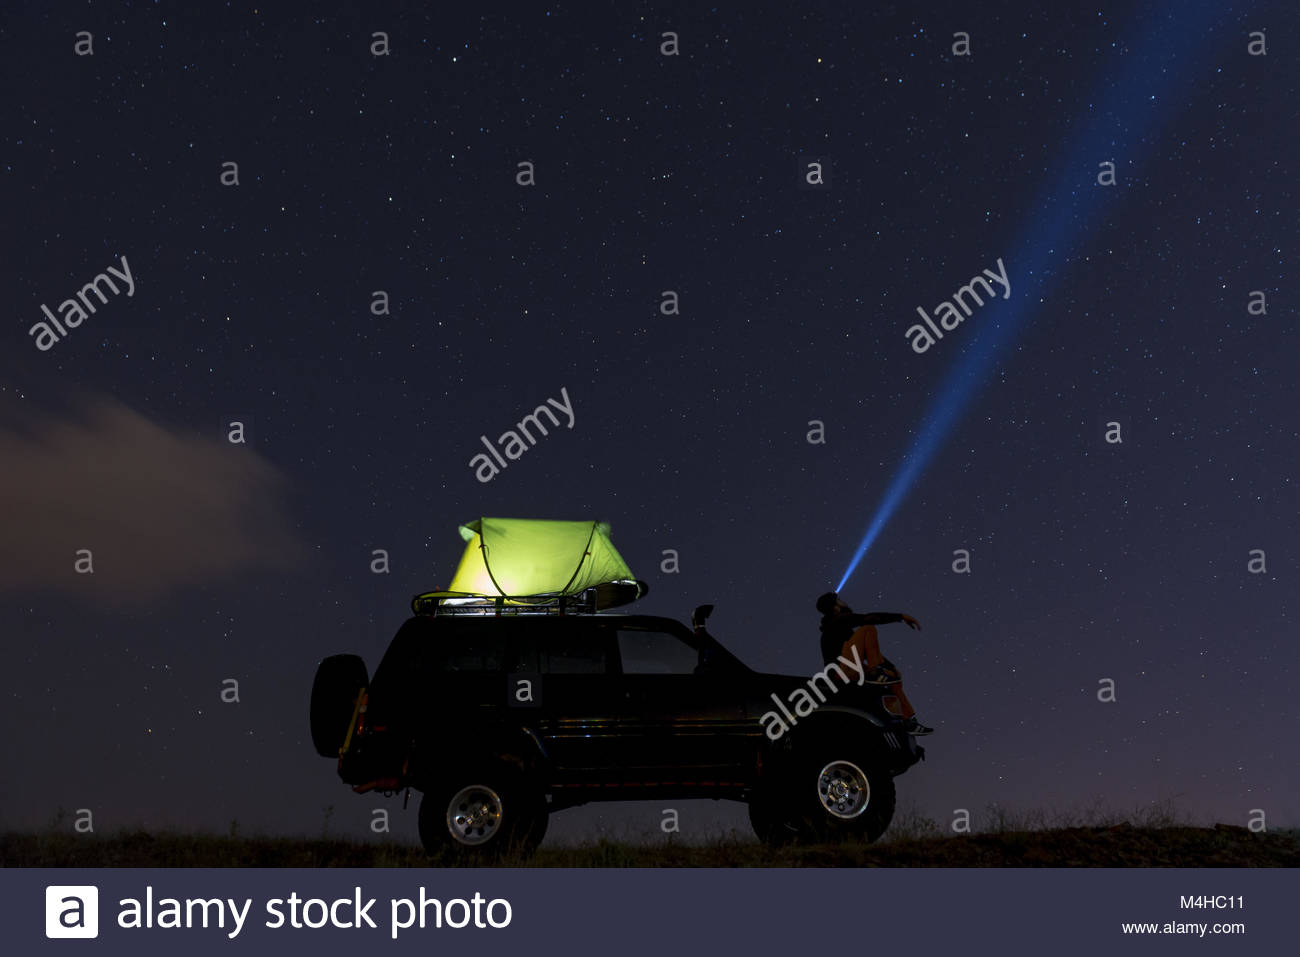 camping the night sky and watch the stars - Stock Image